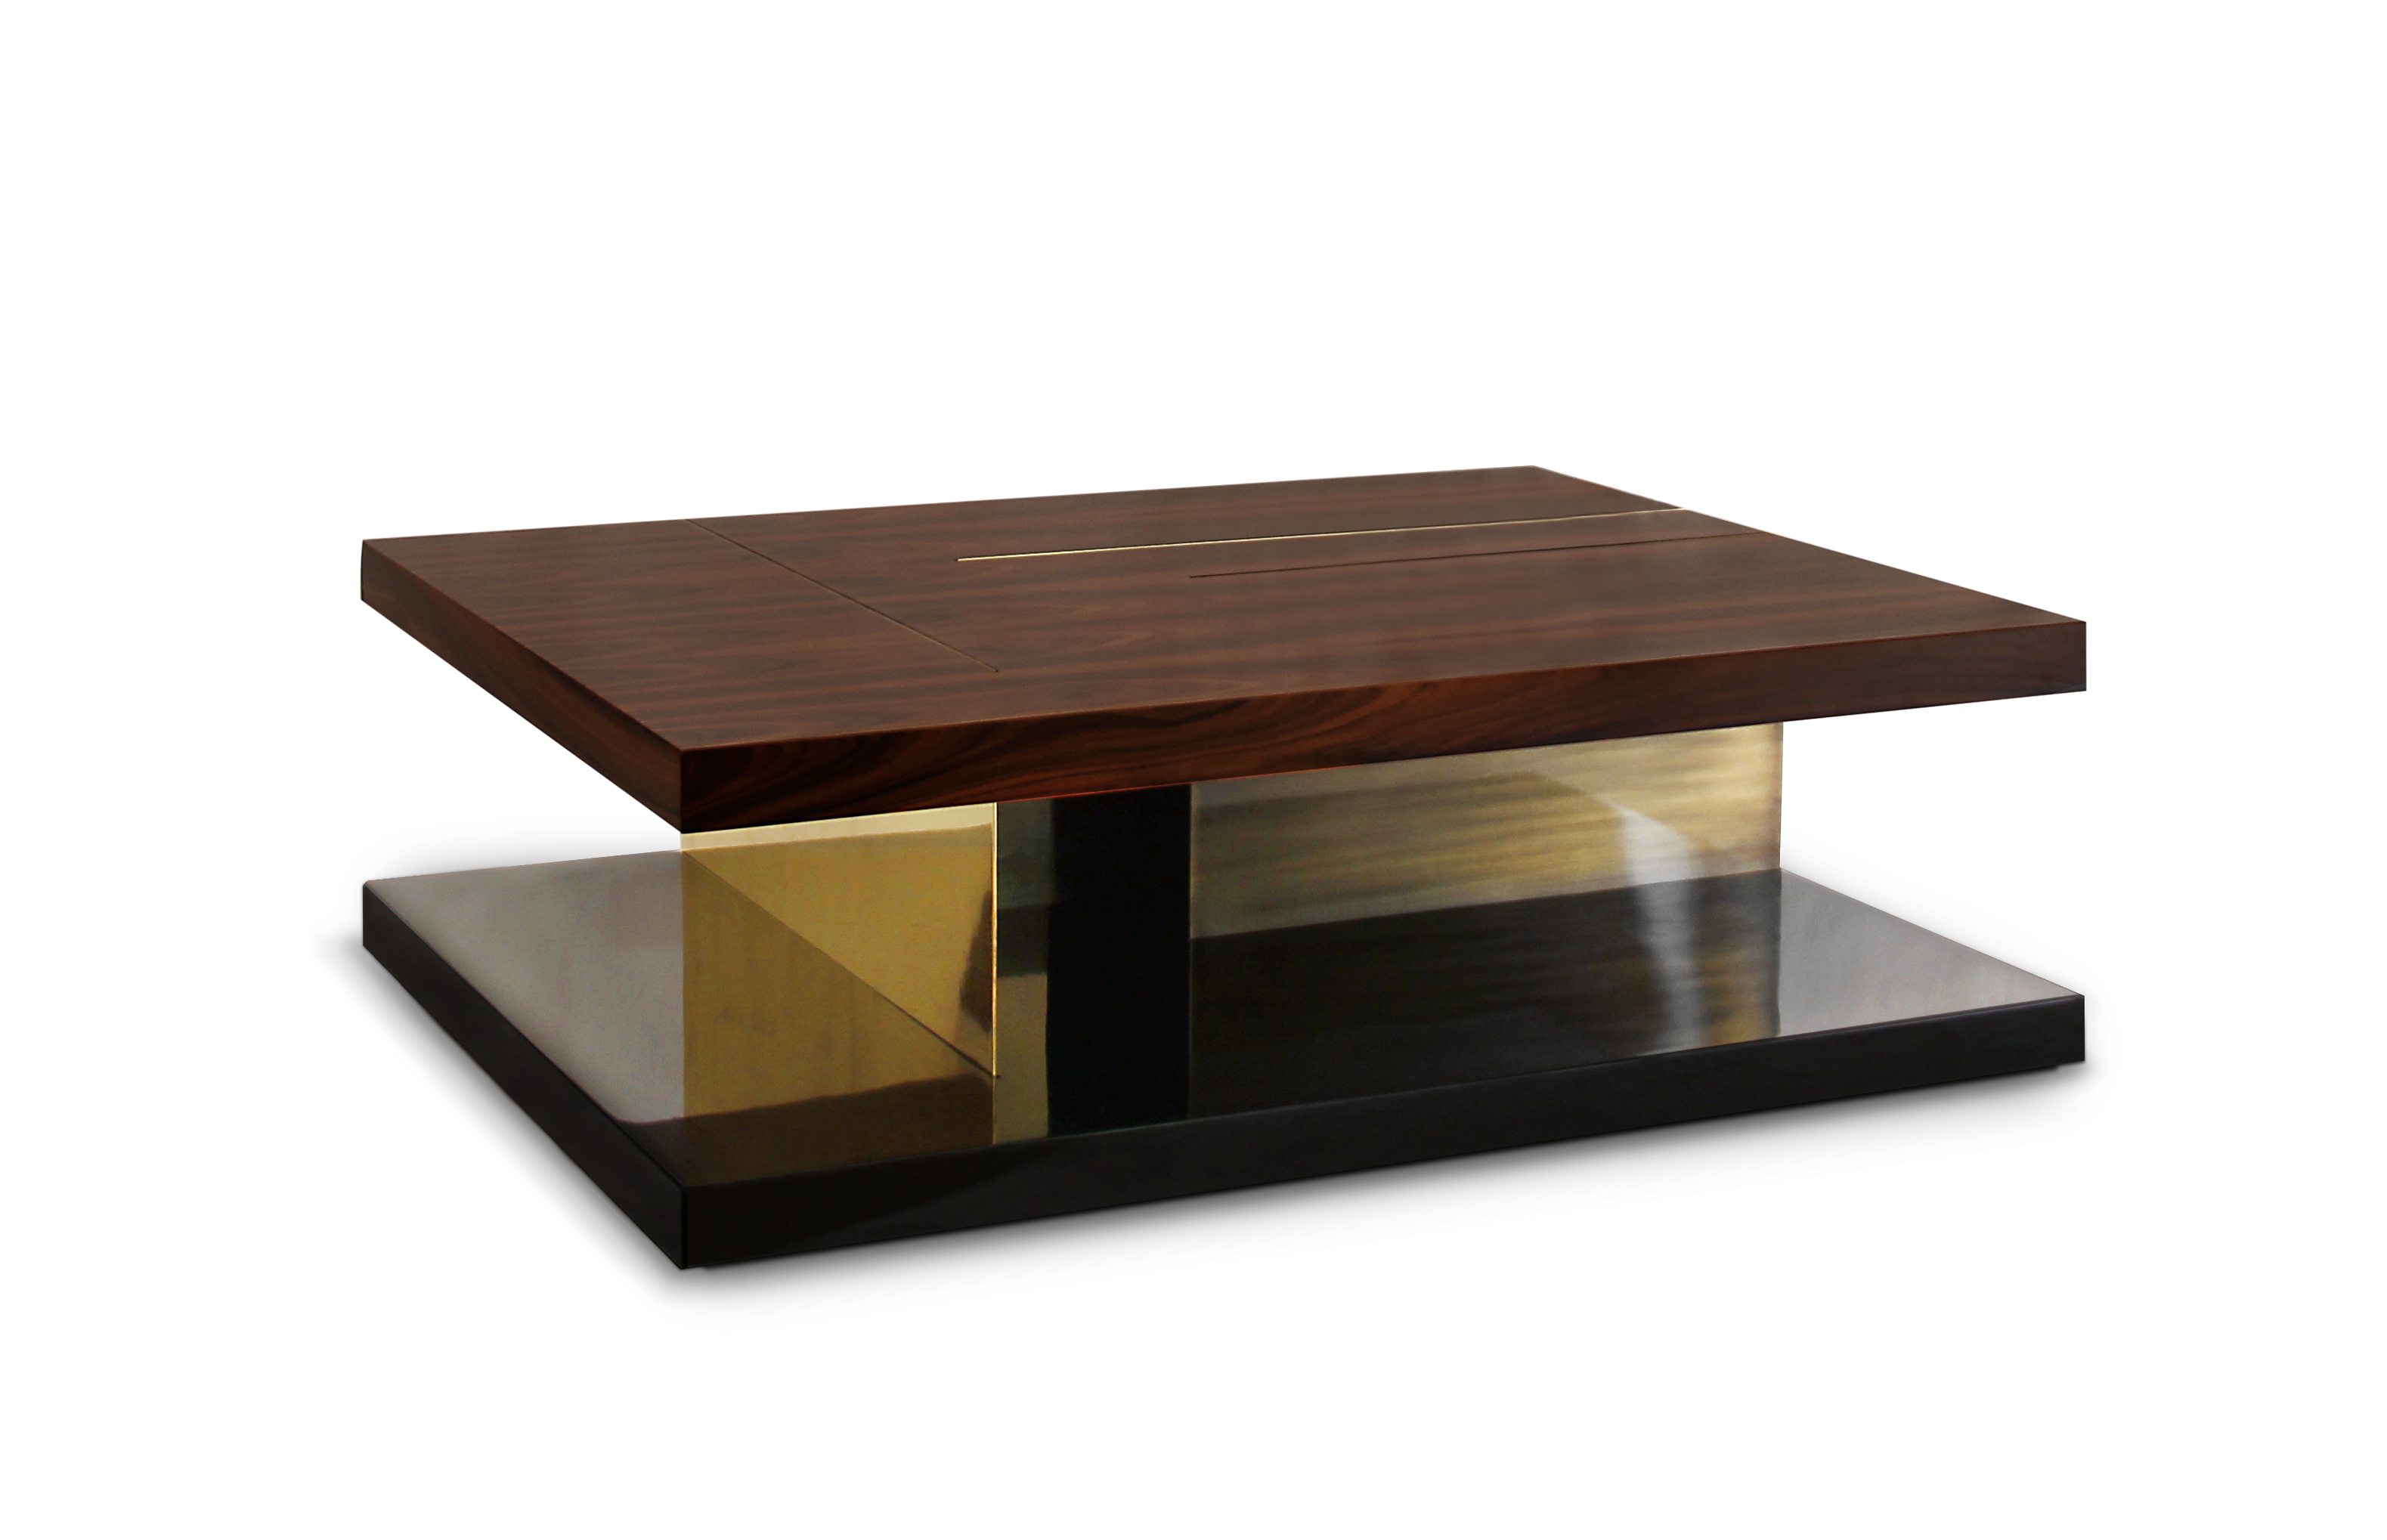 Lallan wood coffee table mid century modern design by brabbu for Design a table